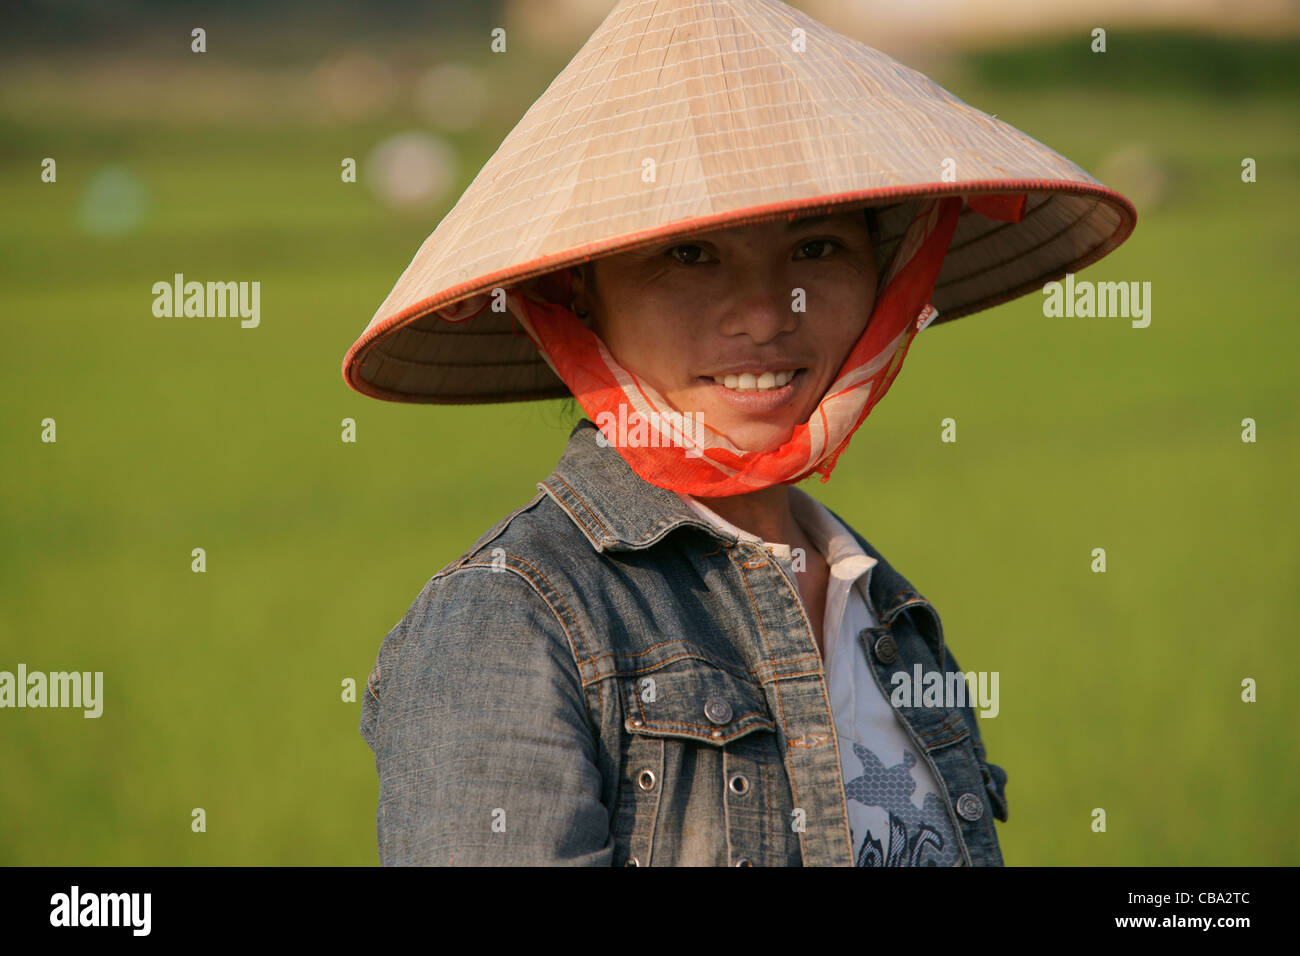 Vietnamese woman working in rice paddy with Vietnamese conical sedge hat -  Stock Image 7b17db00cea